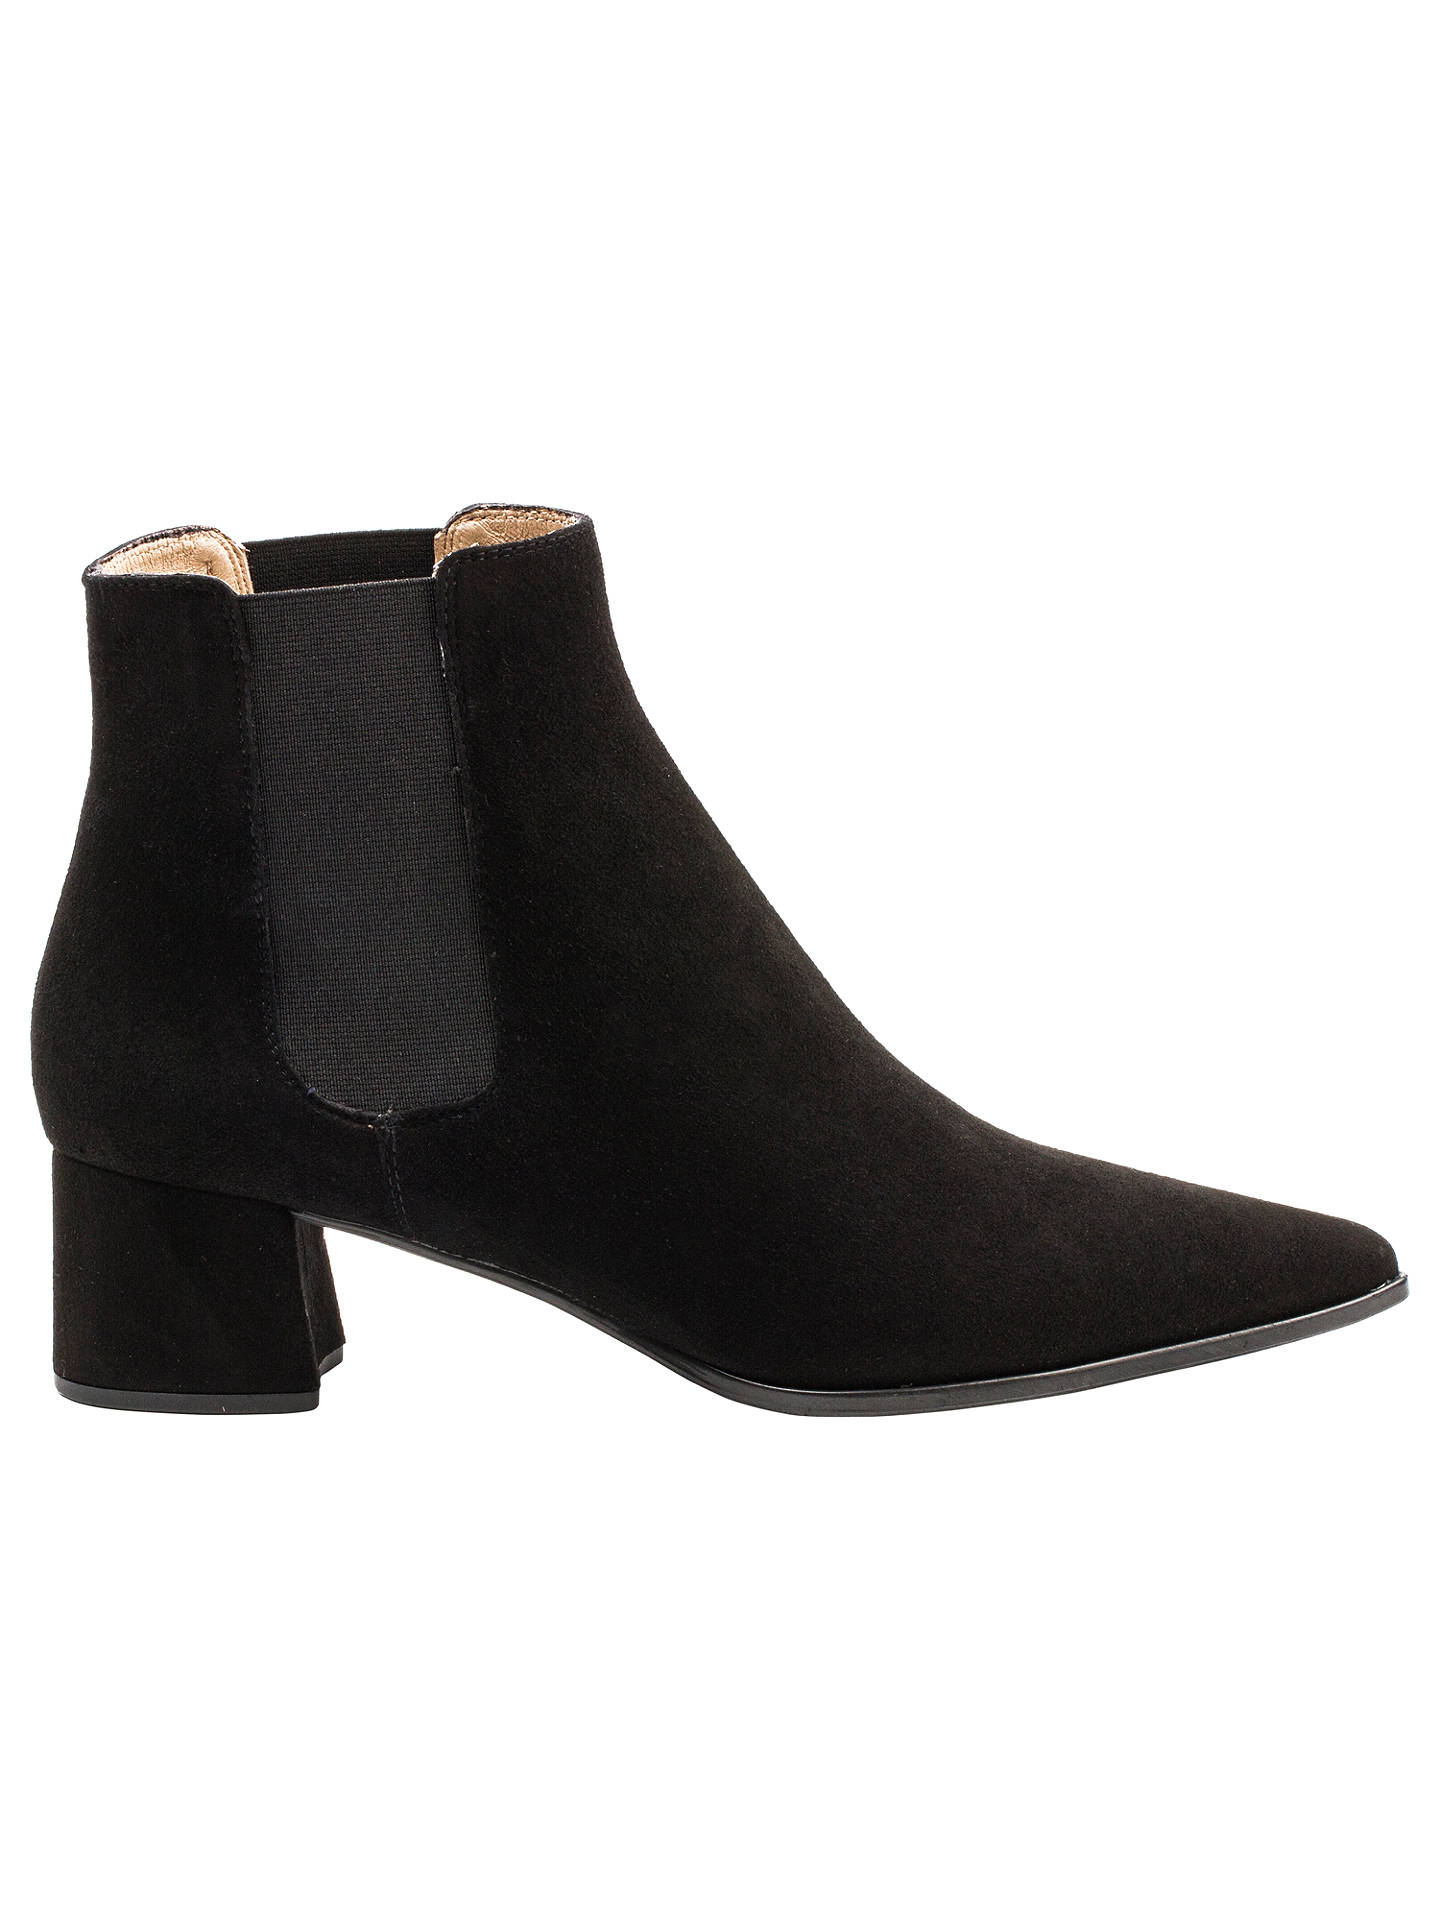 04eede44c98f Unisa Jiste Block Heeled Pointed Toe Ankle Boots at John Lewis ...